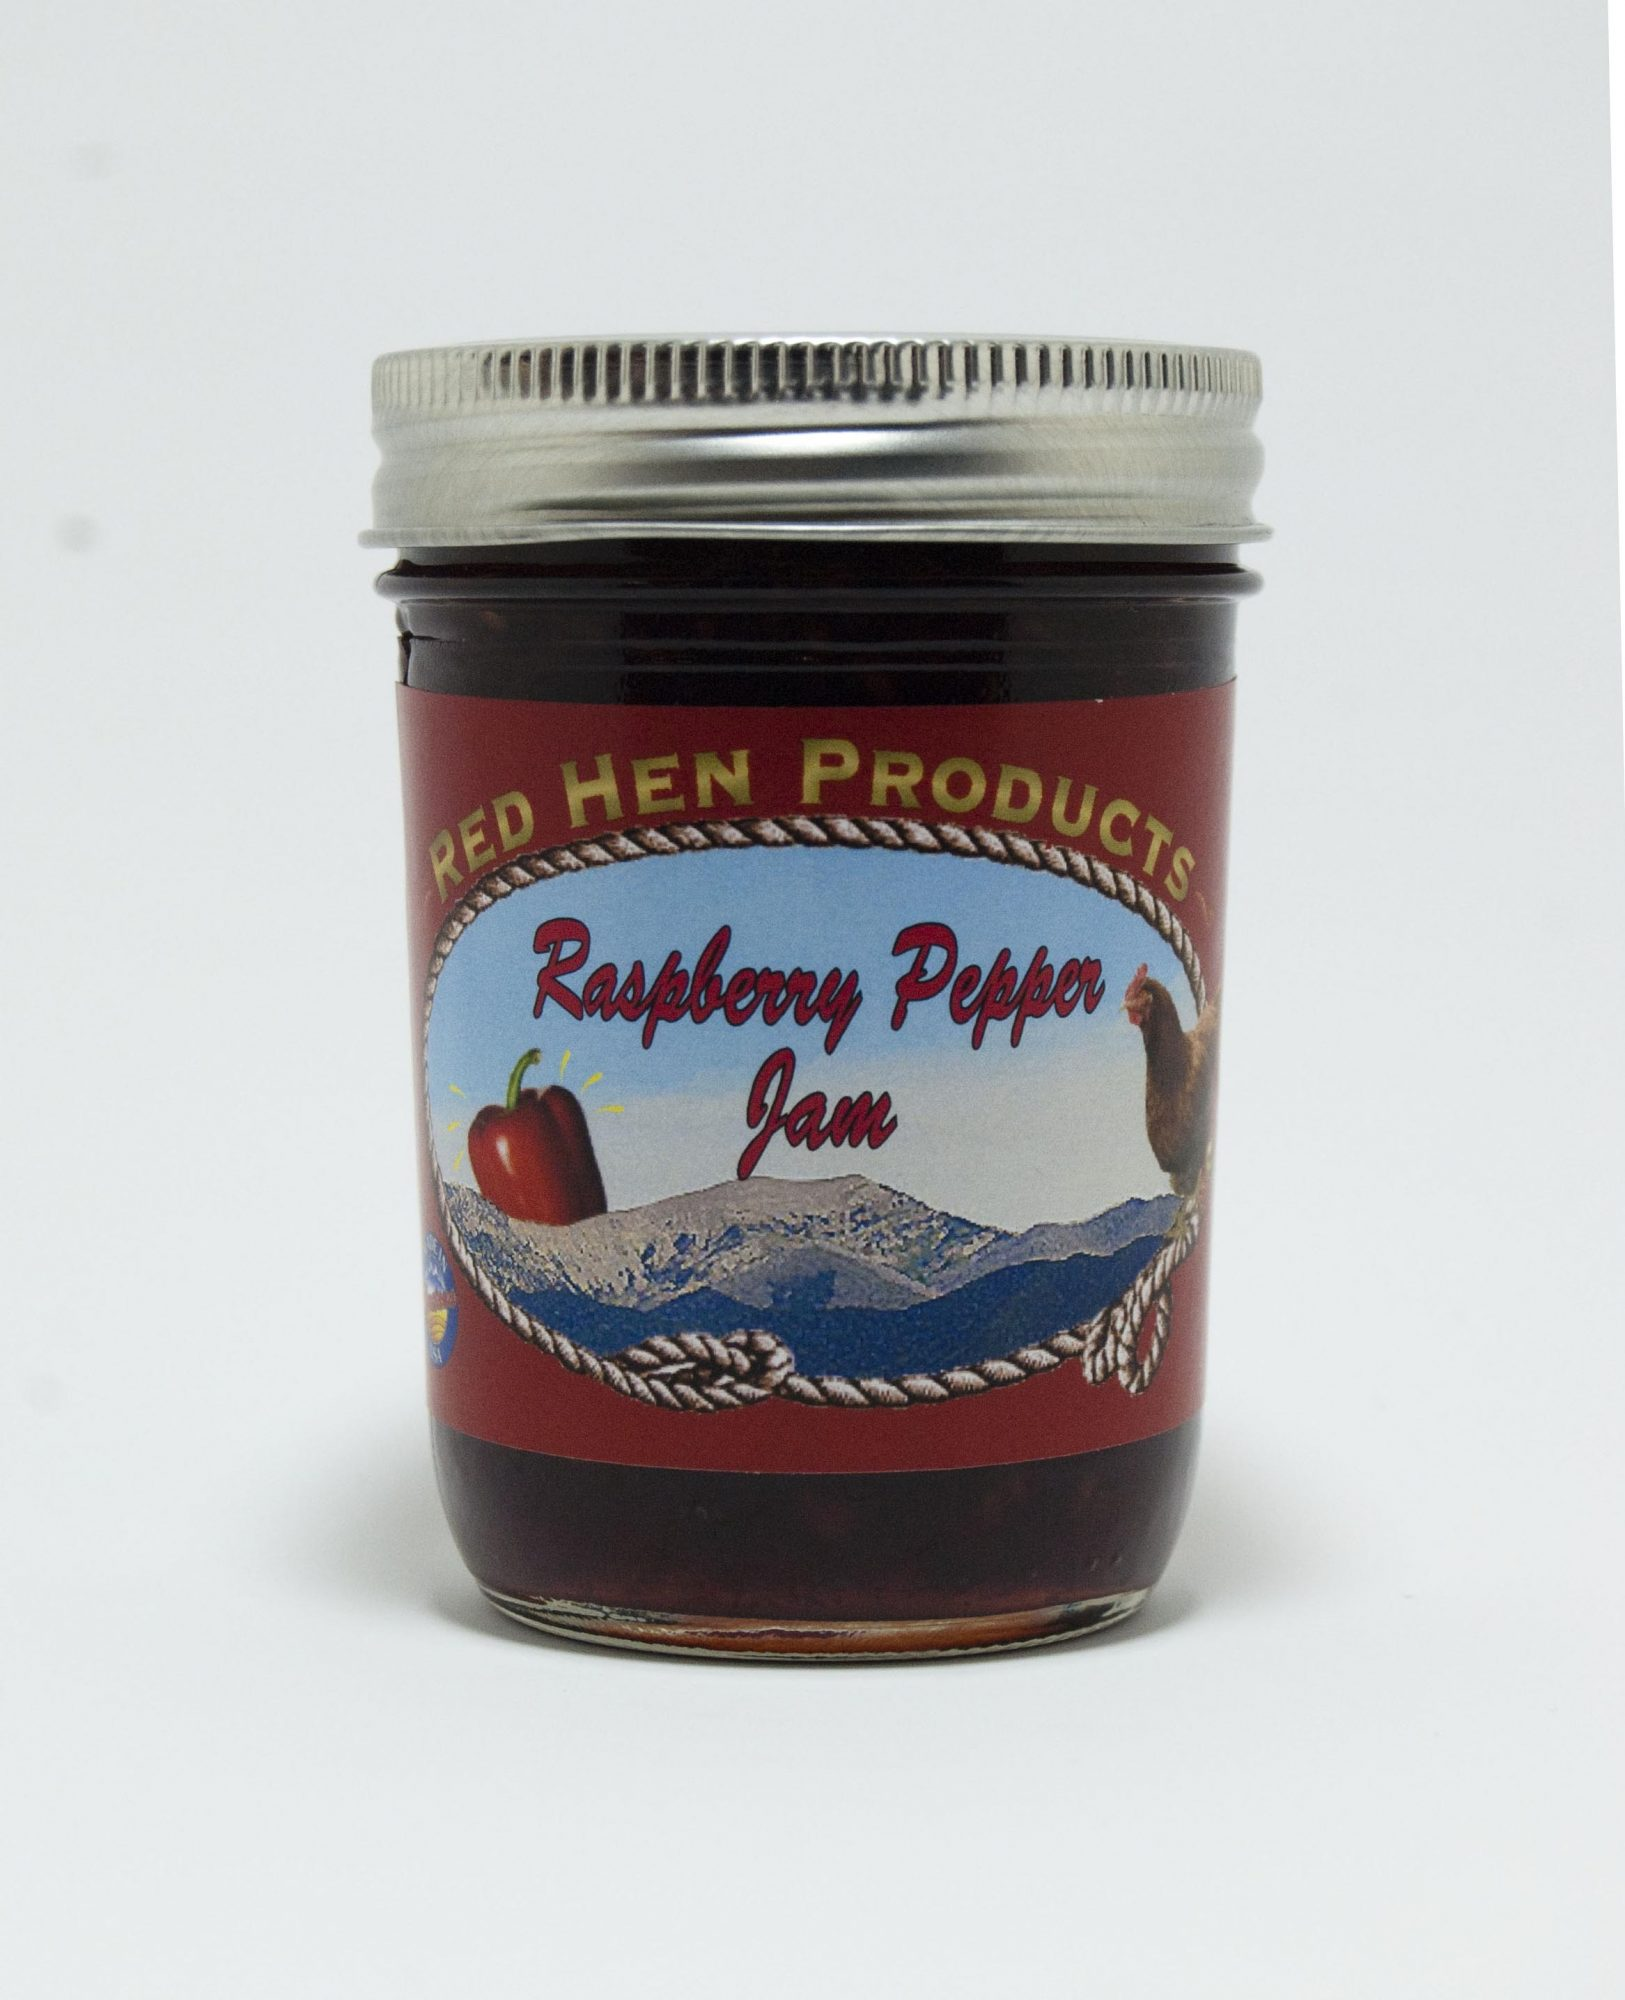 Raspberry Pepper Jam